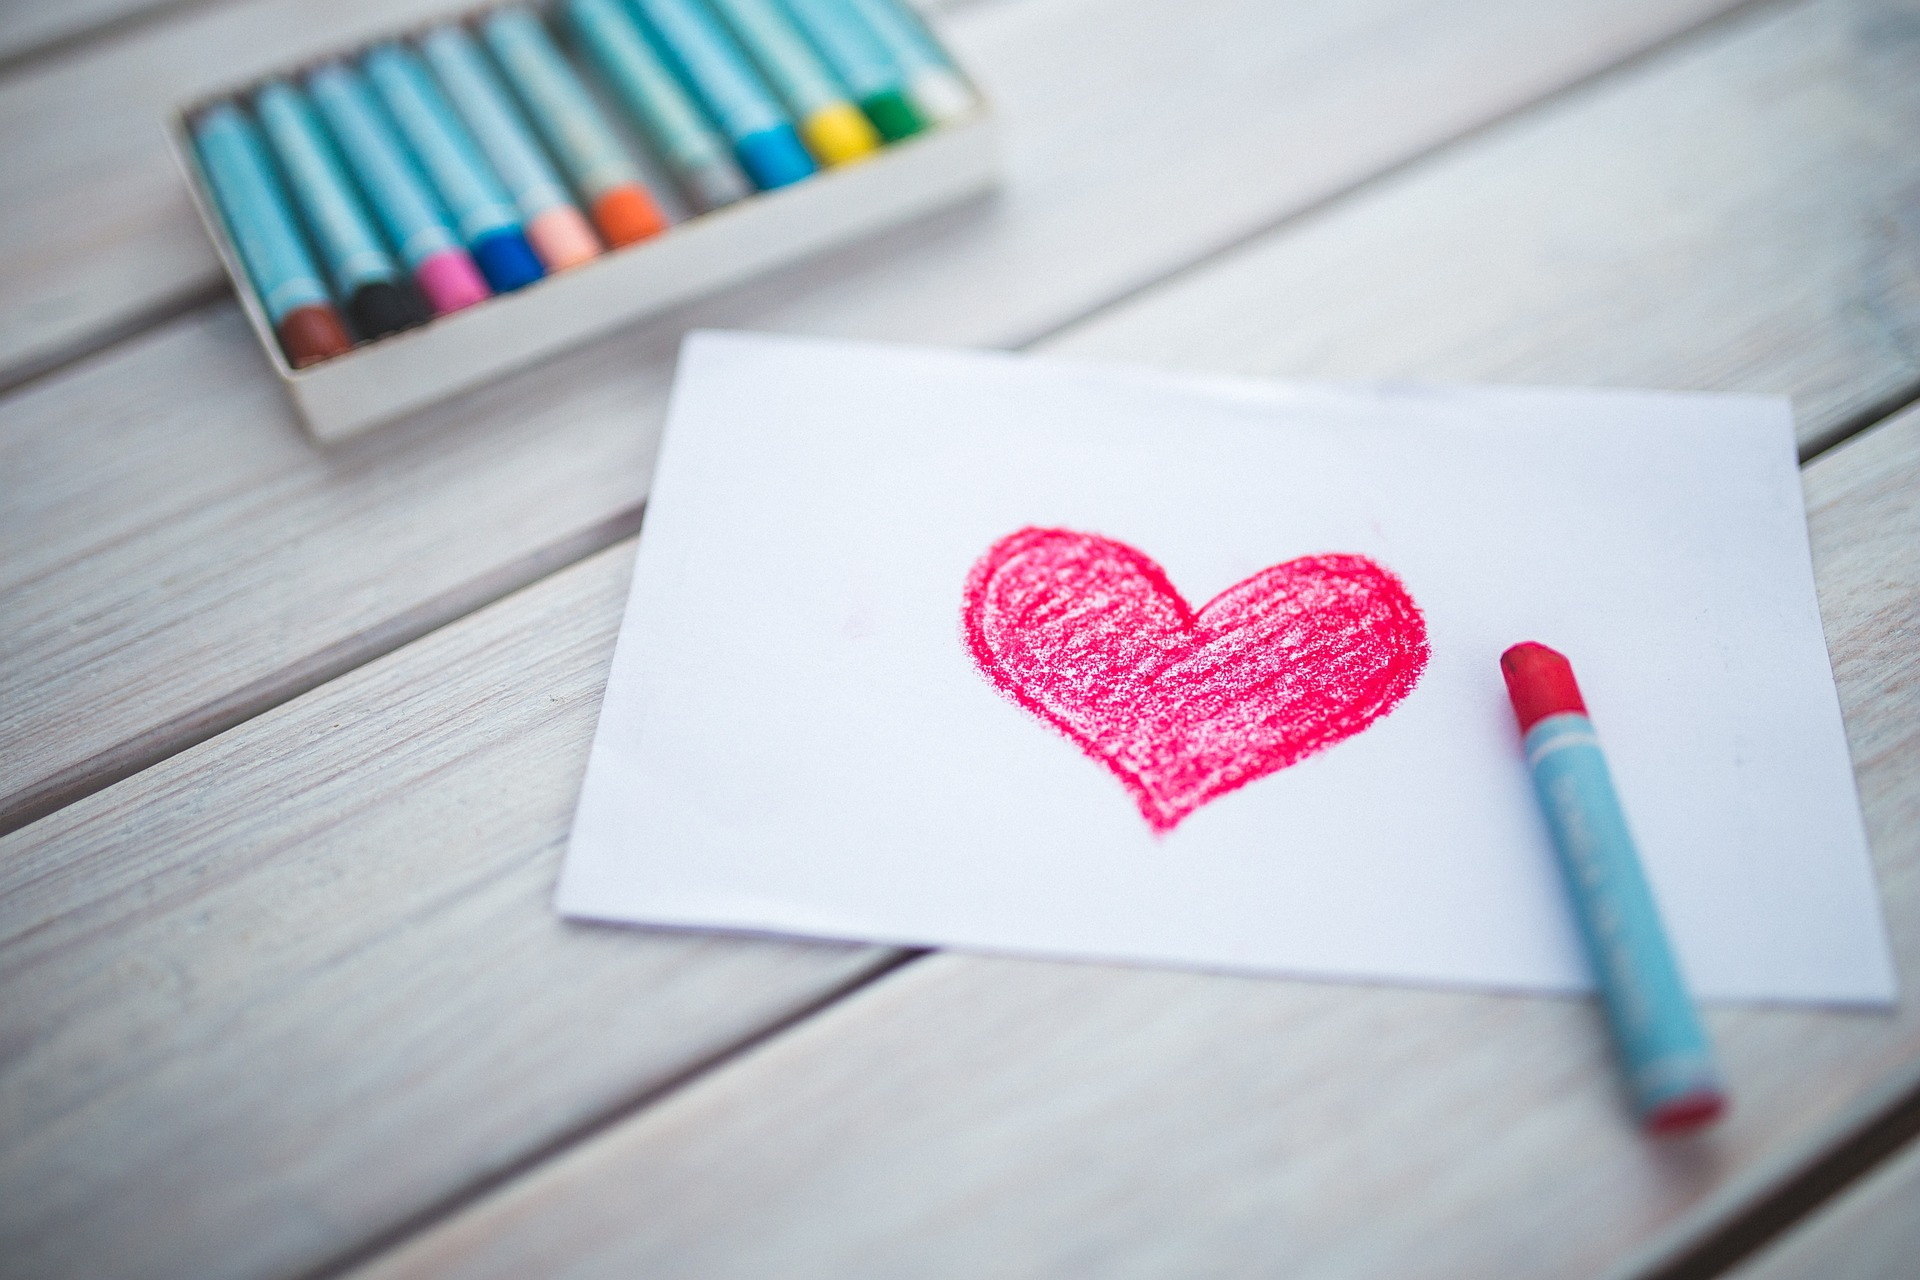 Get paid to write greeting cards: picture of a heart drawn in red crayon, with a box of crayons in the background, www.multitalentedwriers.com